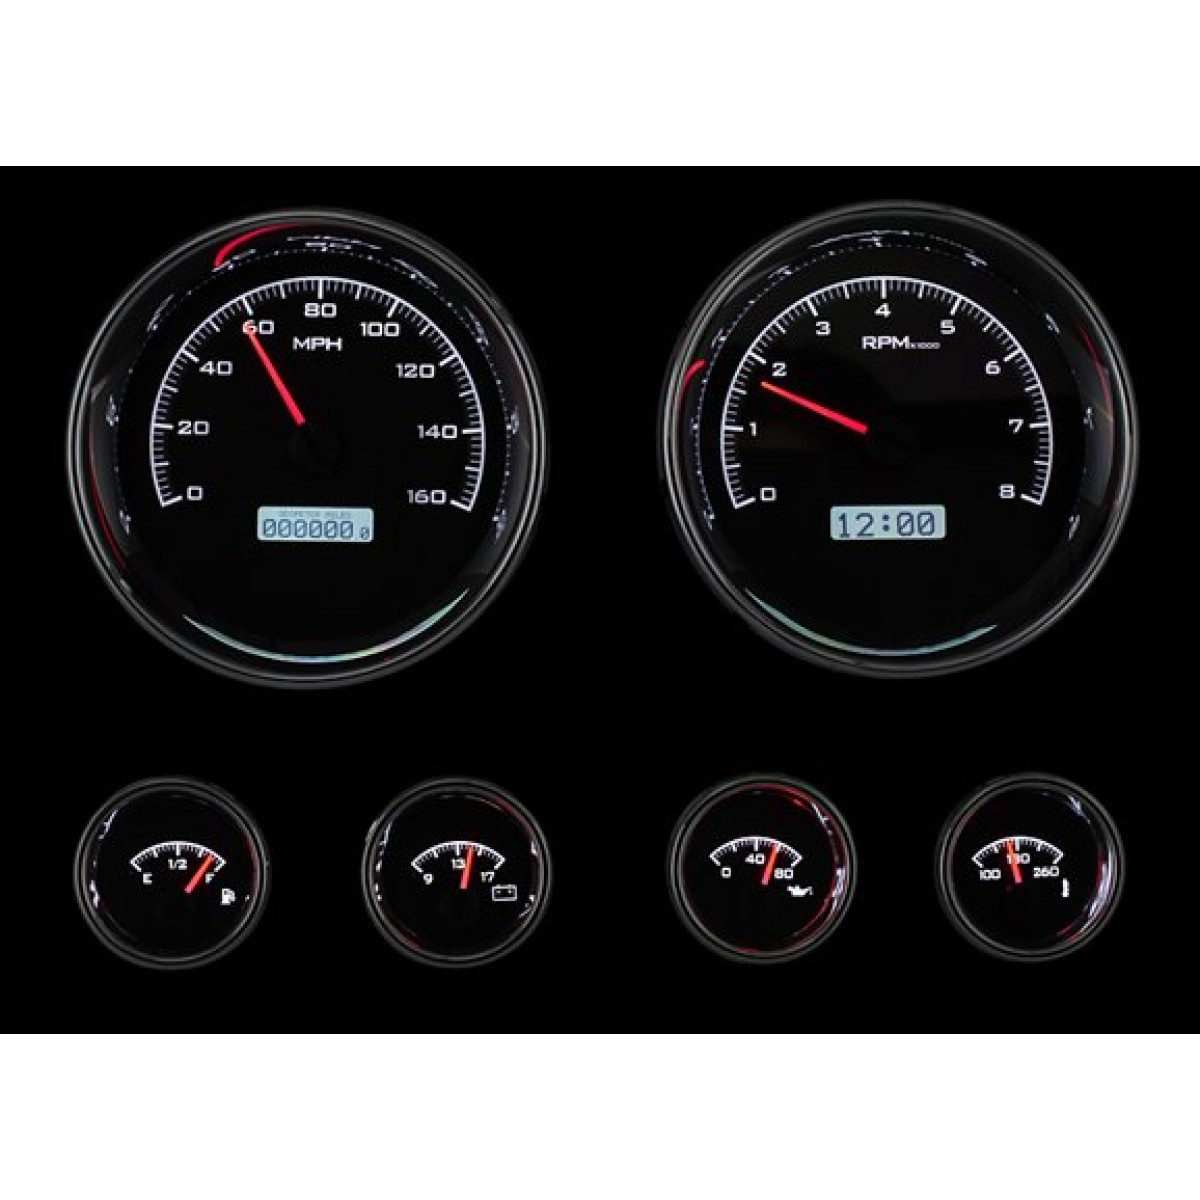 Electronic Gauge Cluster : Dakota digital vhx universal six gauge round